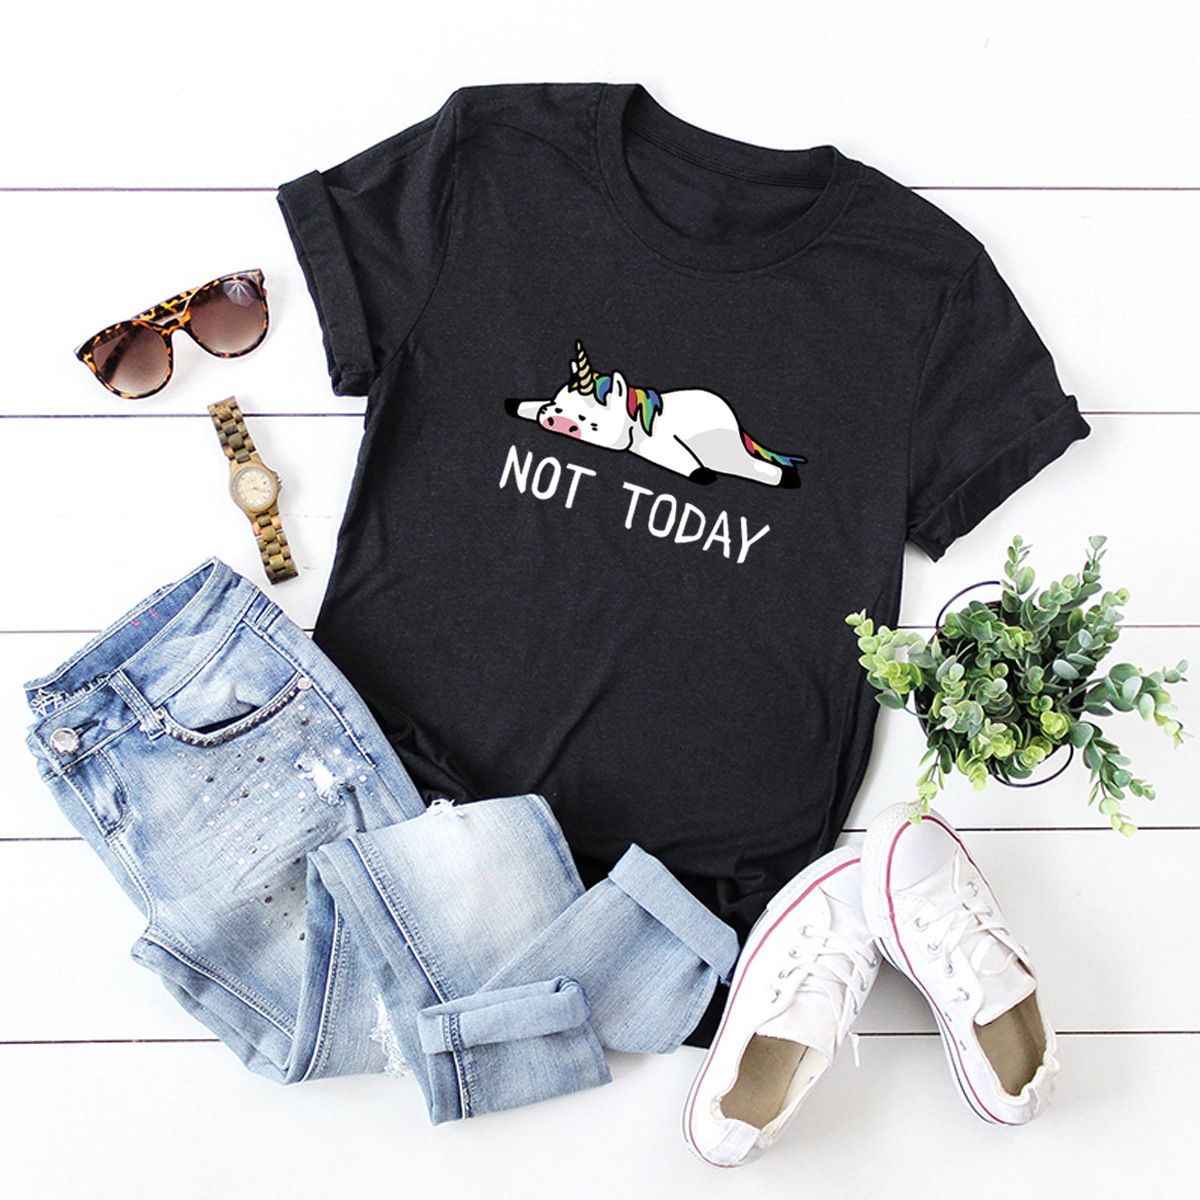 Hd478a0b336454744b5414c9feb94ebc4y - NOT TODAY Unicorn Printed 100% Cotton Short-sleeved Women's T-shirt Casual Soft Female T shirt Women Plus Size Top